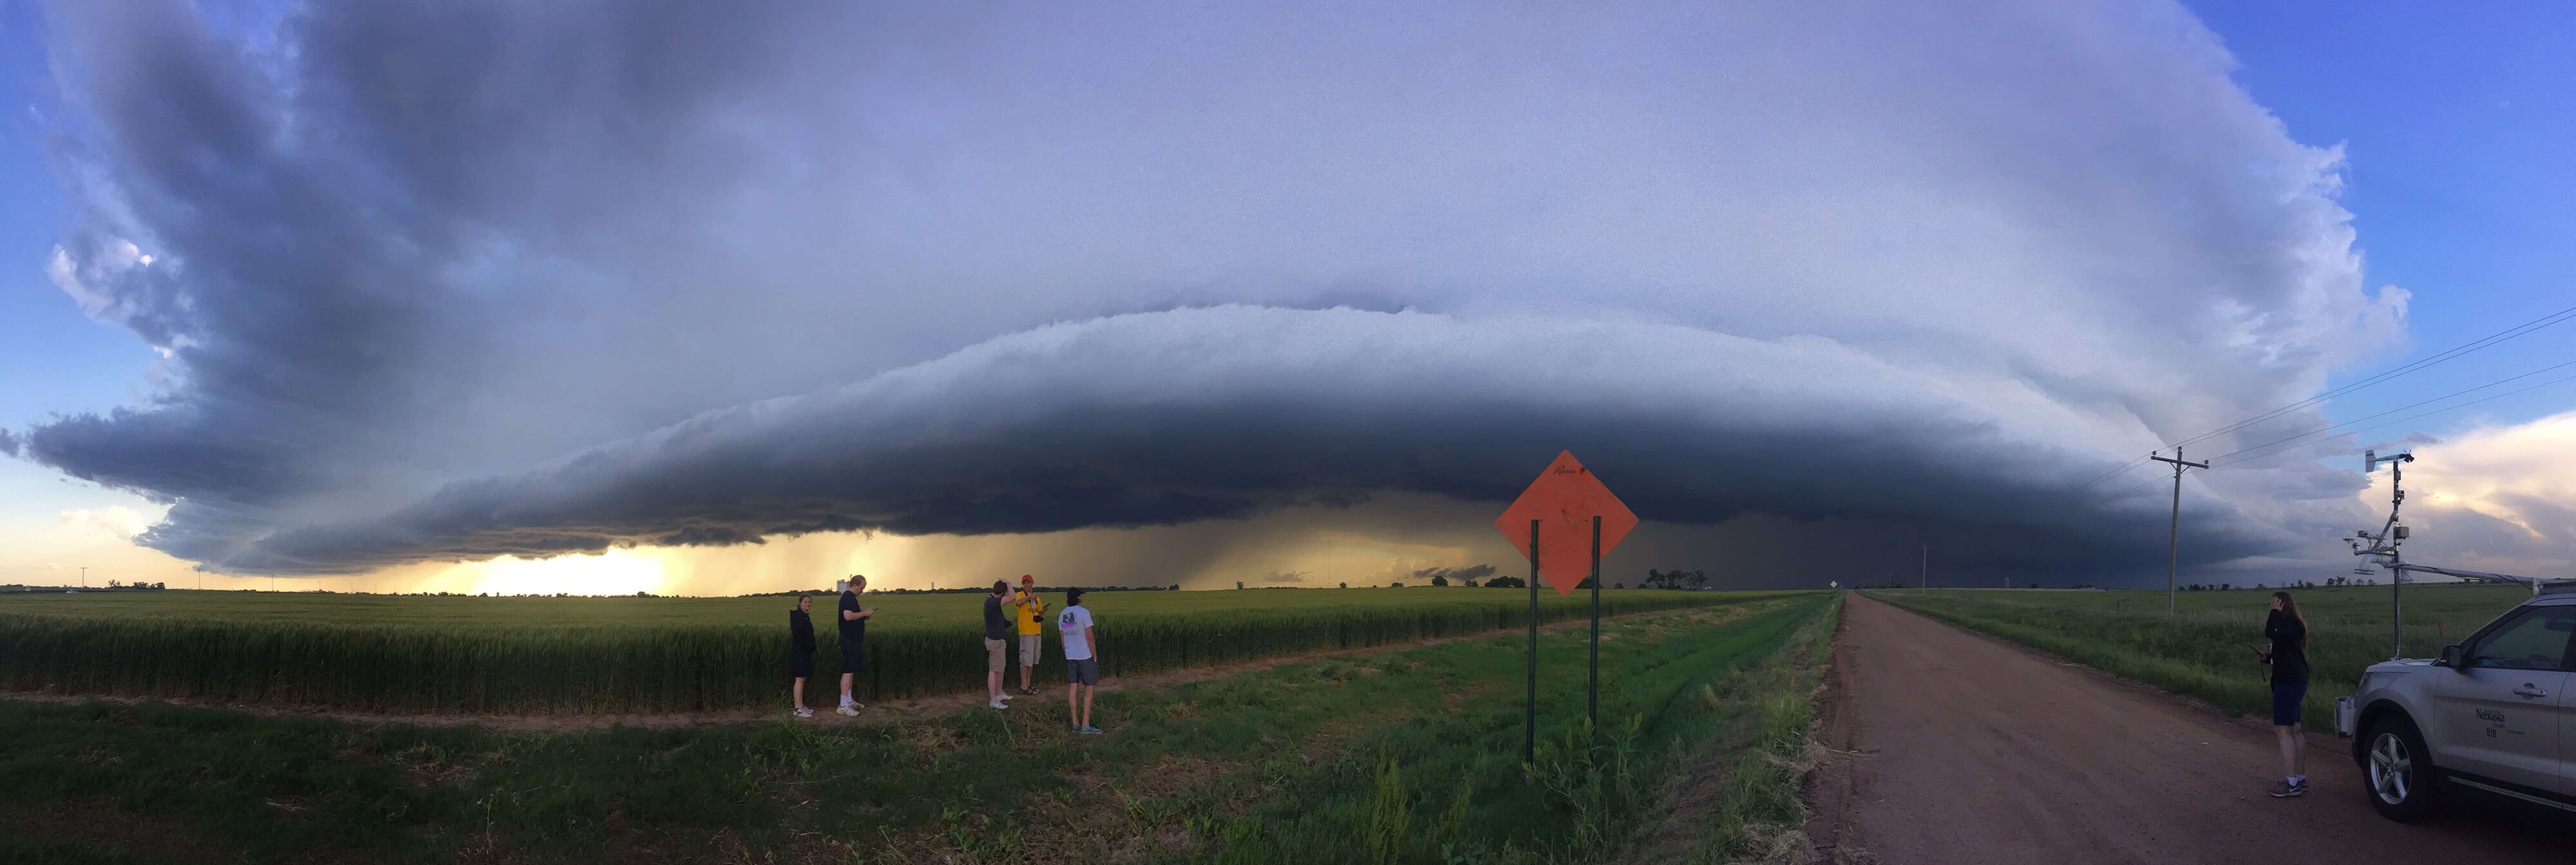 panoramic shot of storm clouds with researchers in the foreground.